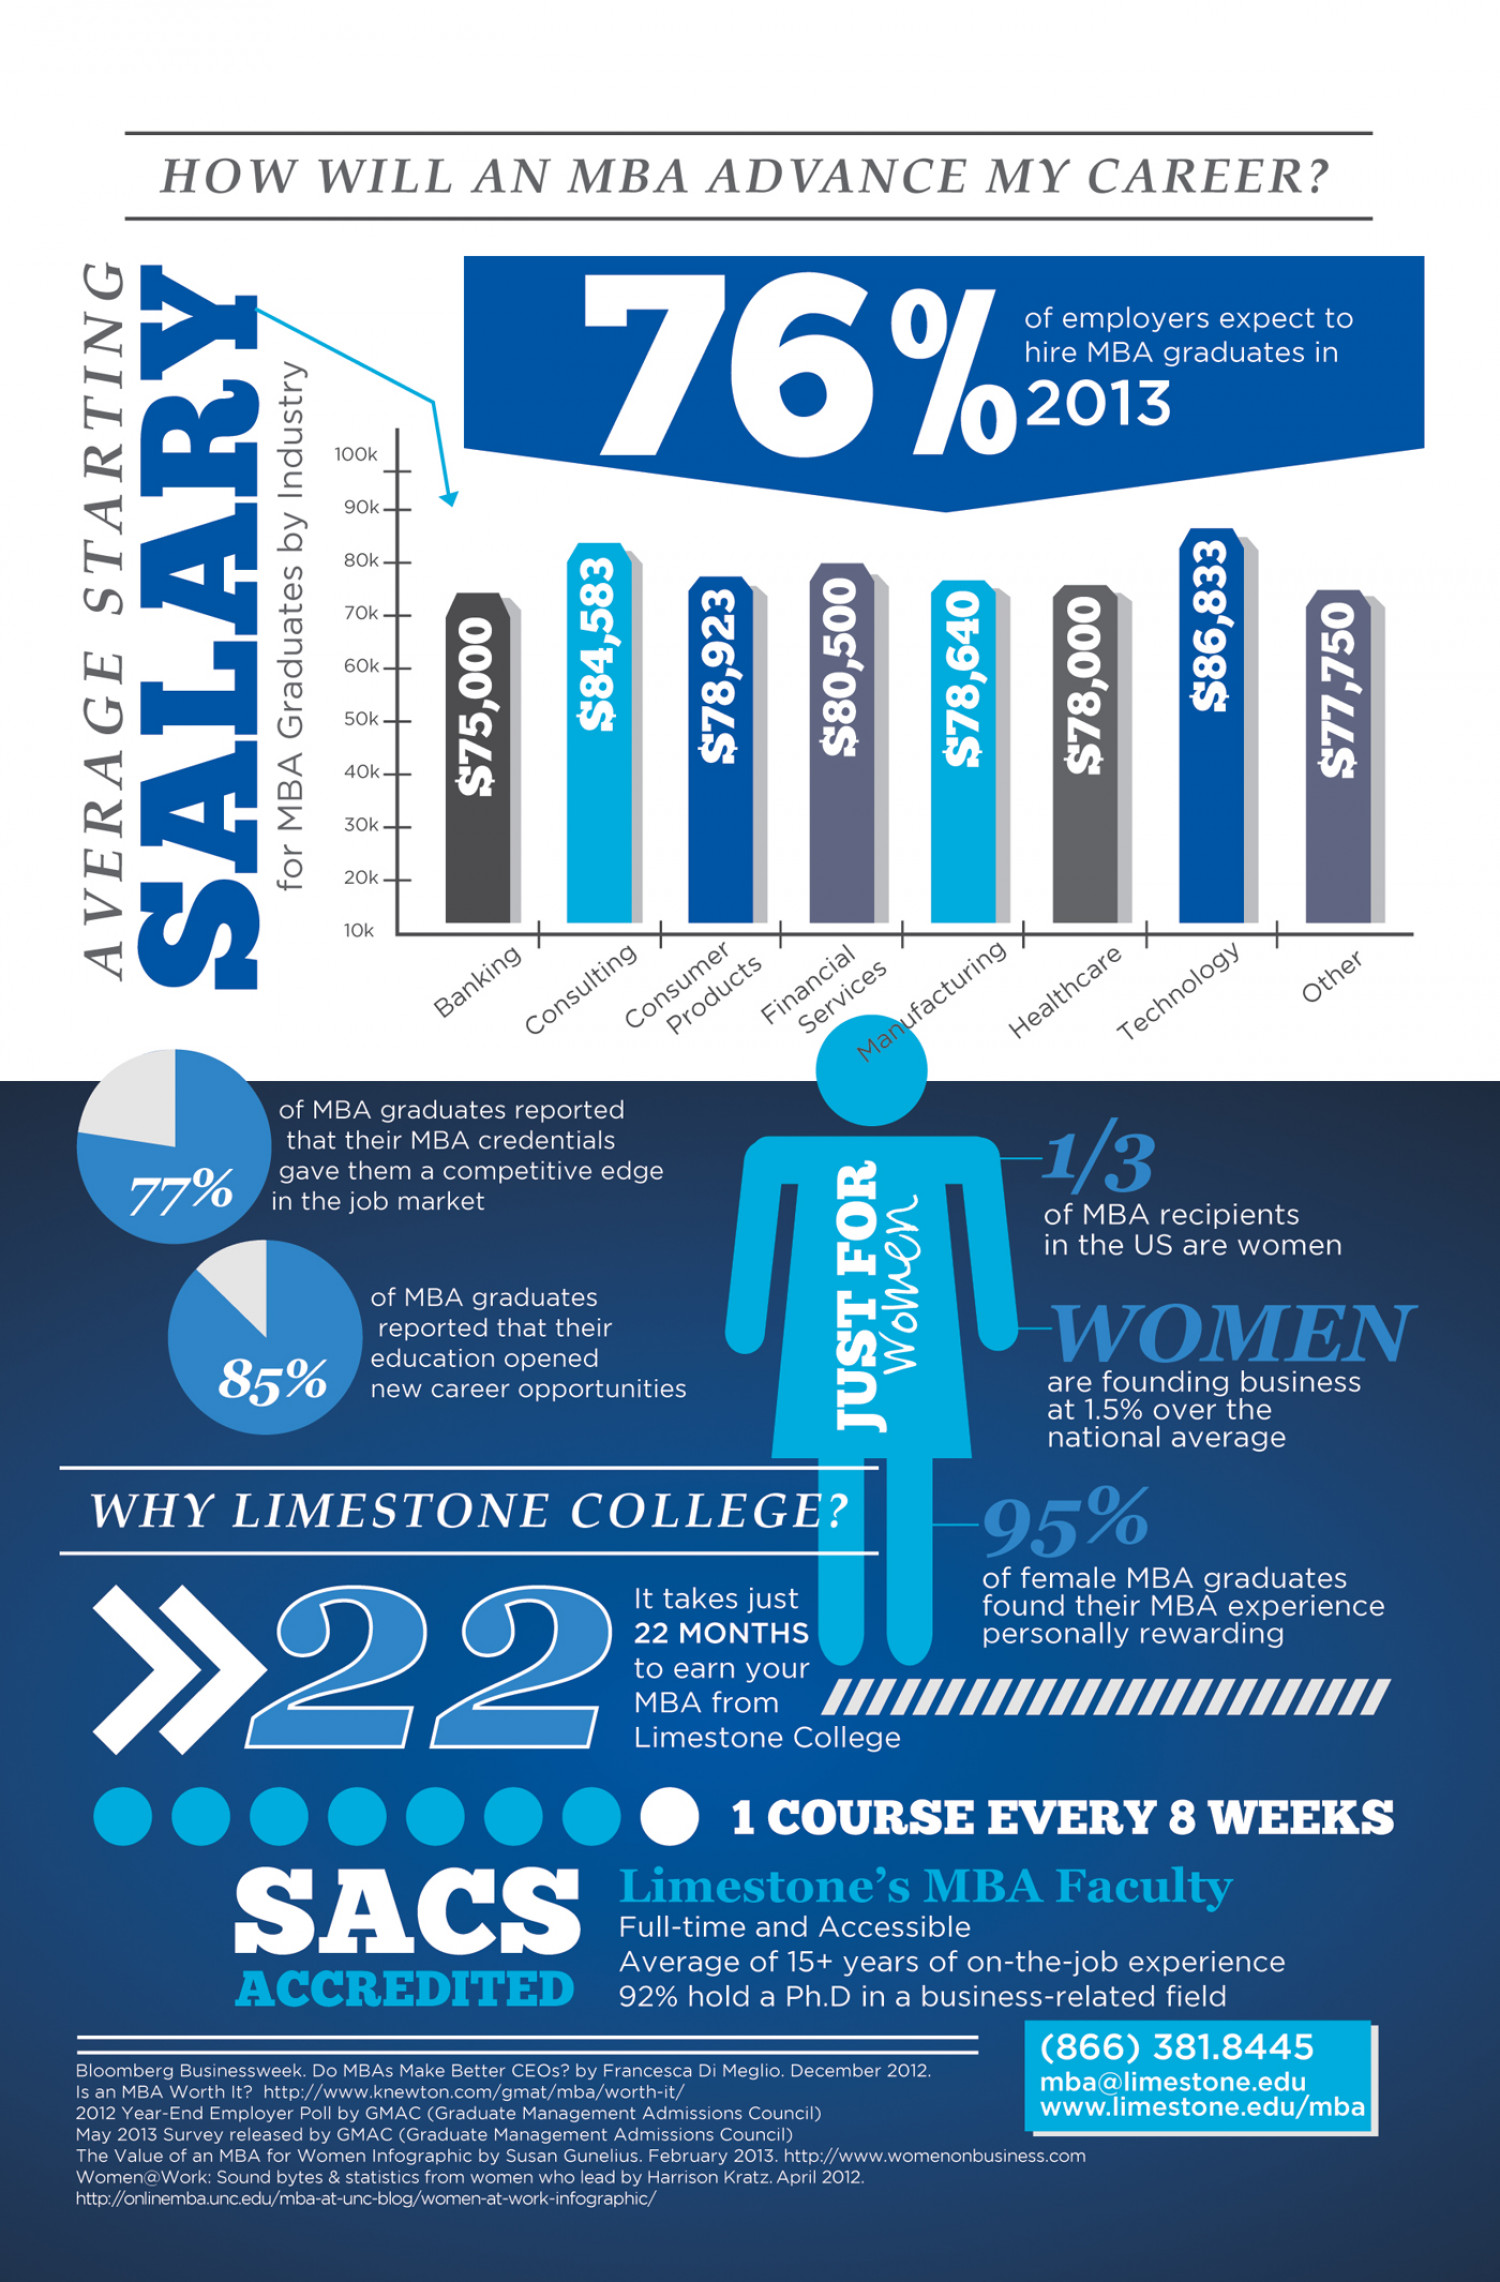 limestone college mba salary increase statistics ly limestone college mba salary increase statistics infographic